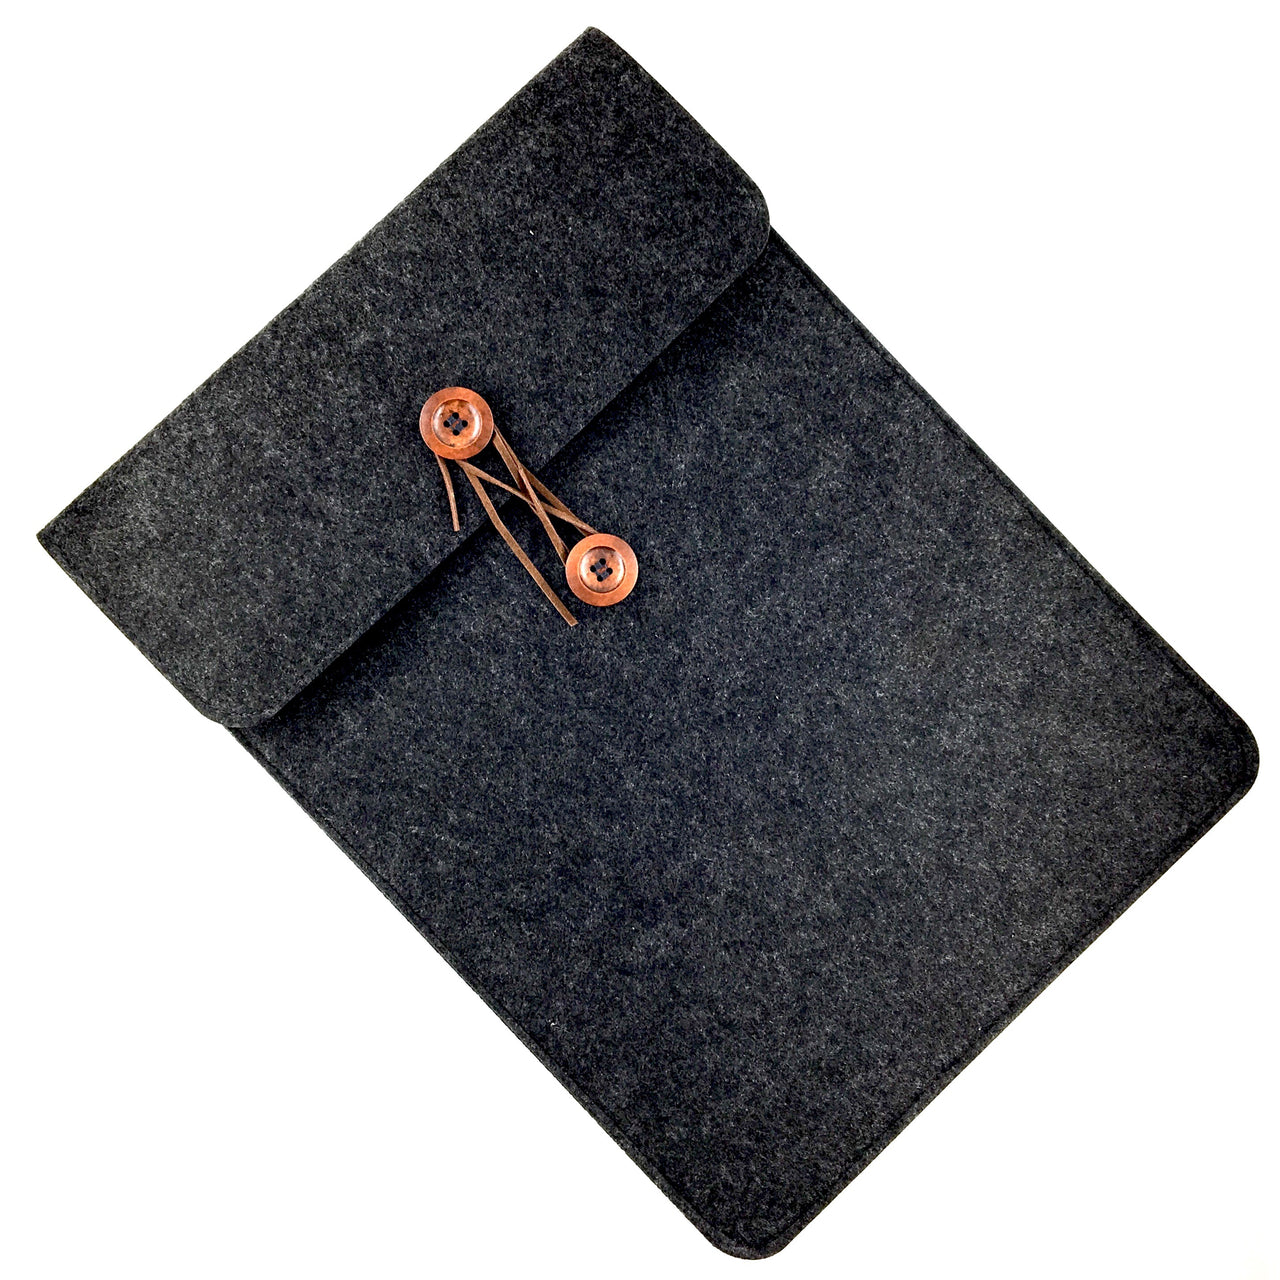 Felted Tablet Sleeve shown in Charcoal